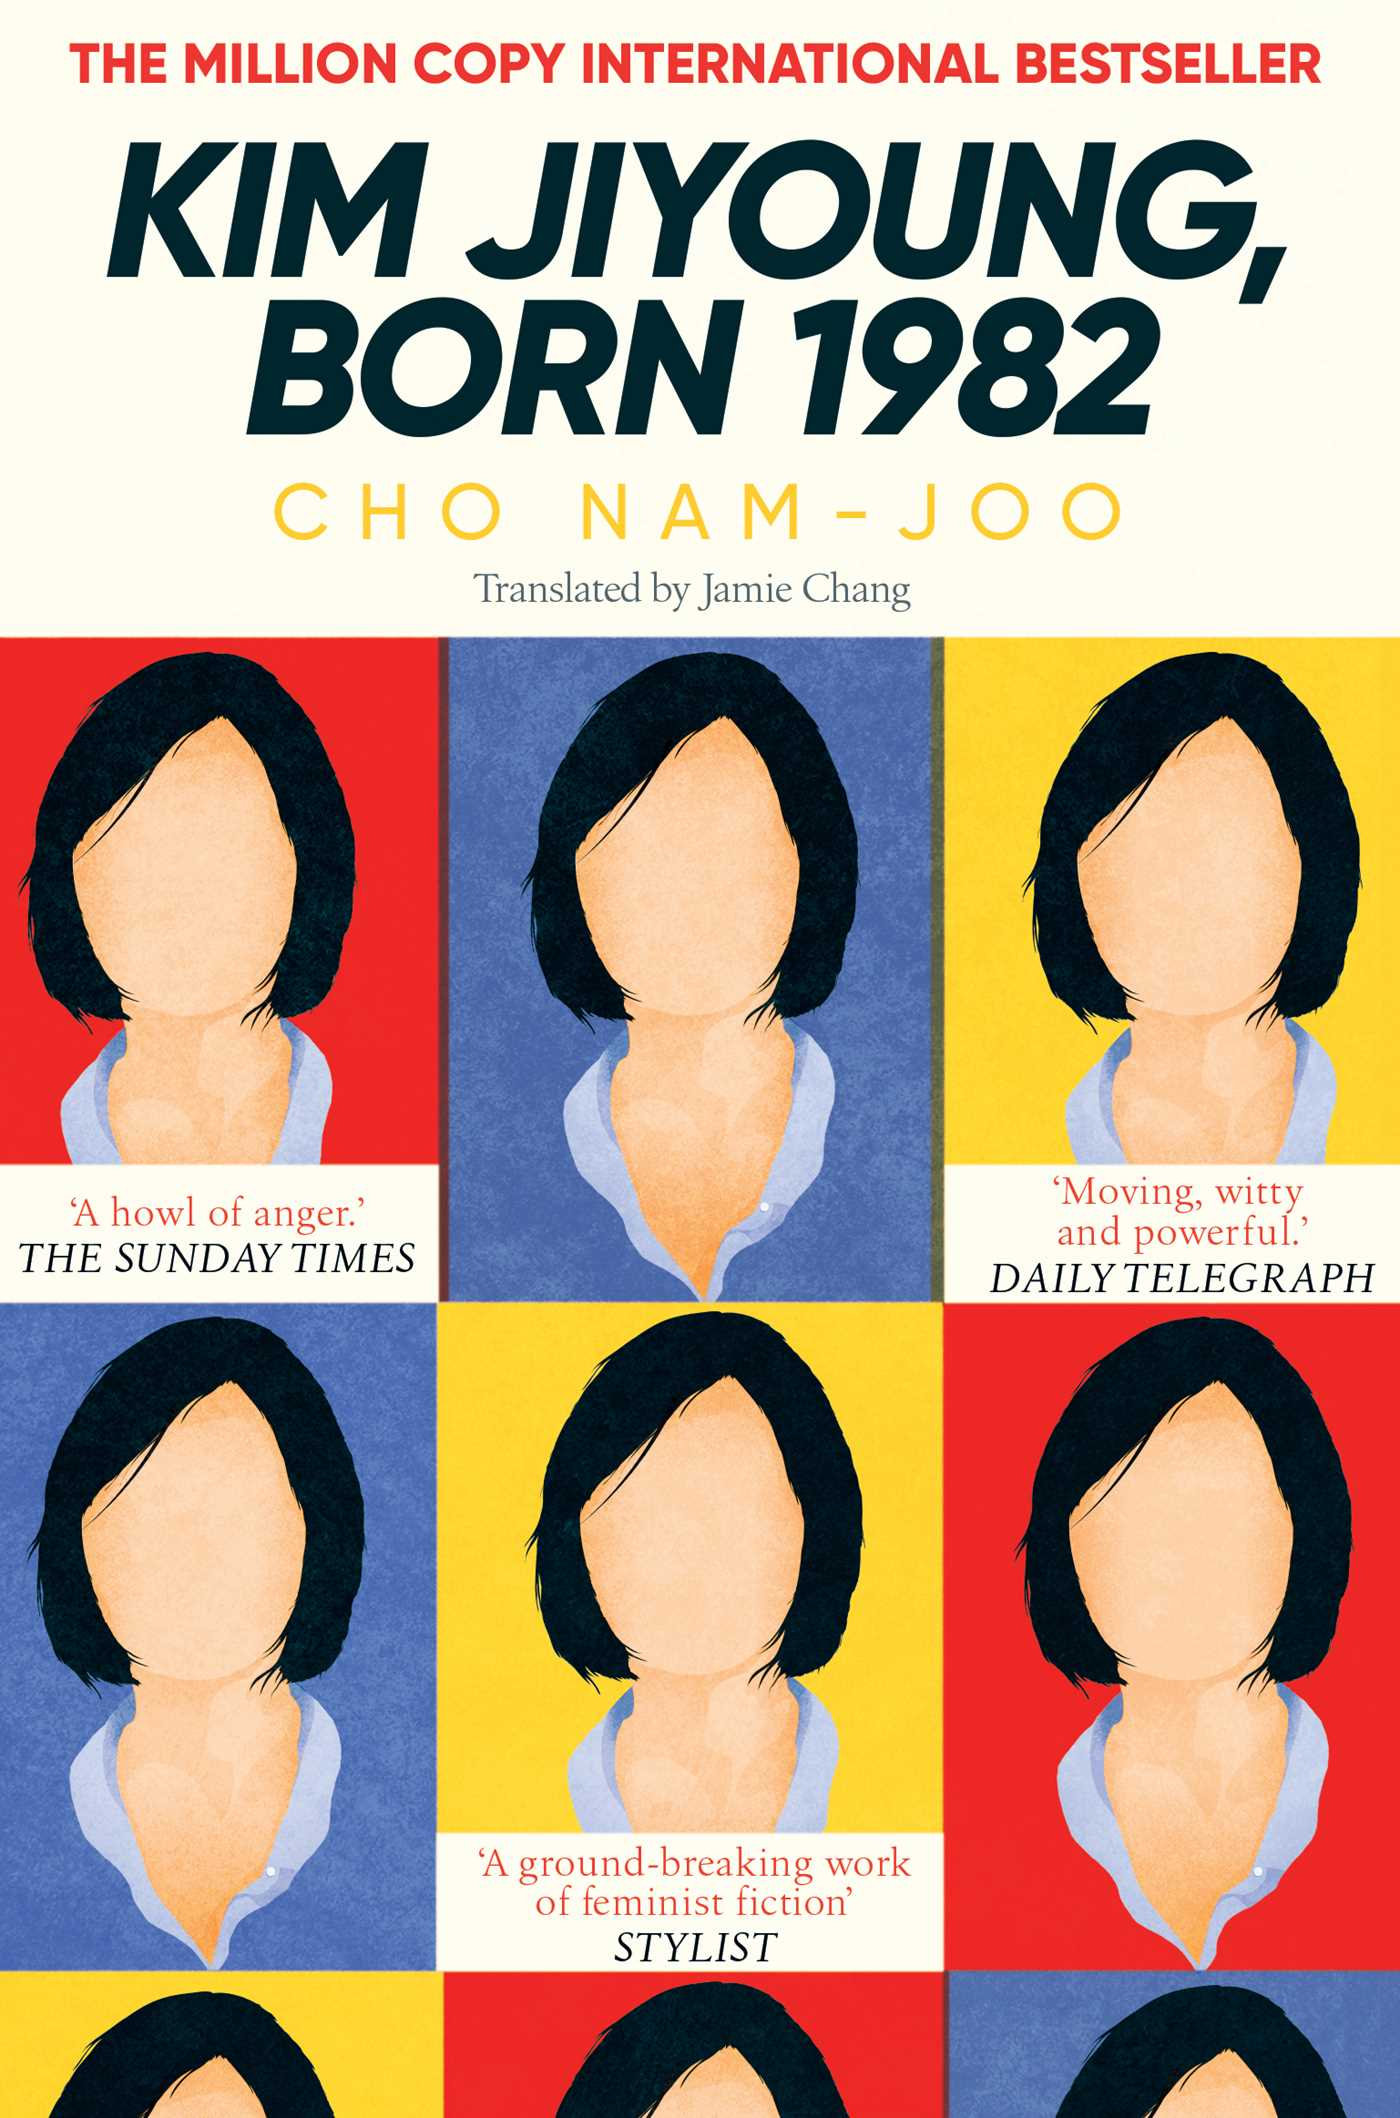 Kim Jiyoung, Born 1982 | Book by Cho Nam-Joo, Jamie Chang | Official  Publisher Page | Simon & Schuster UK